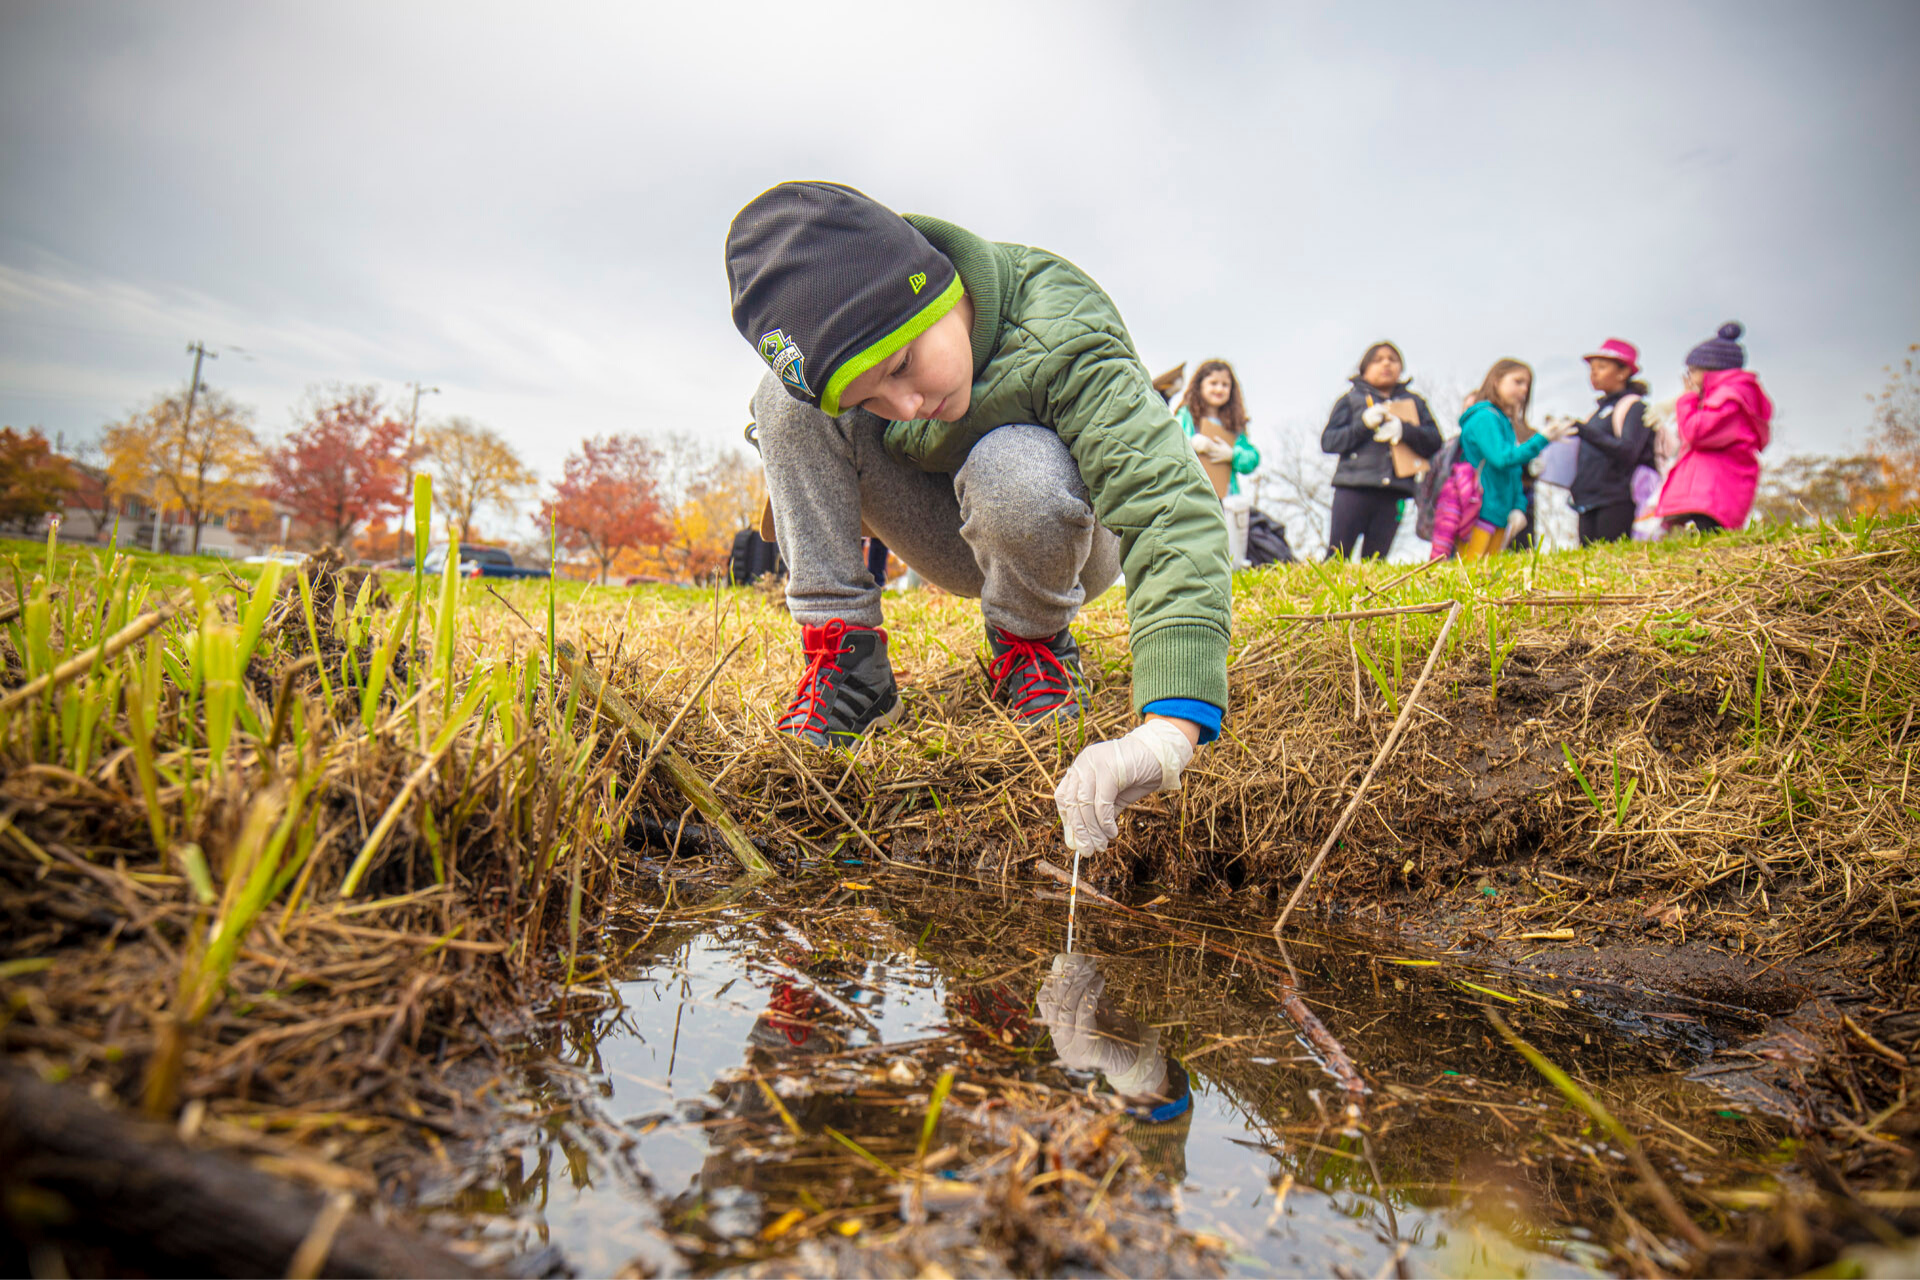 A child kneels to examine a puddle during an IslandWood program in Seattle. A group of other children are visible in the background.